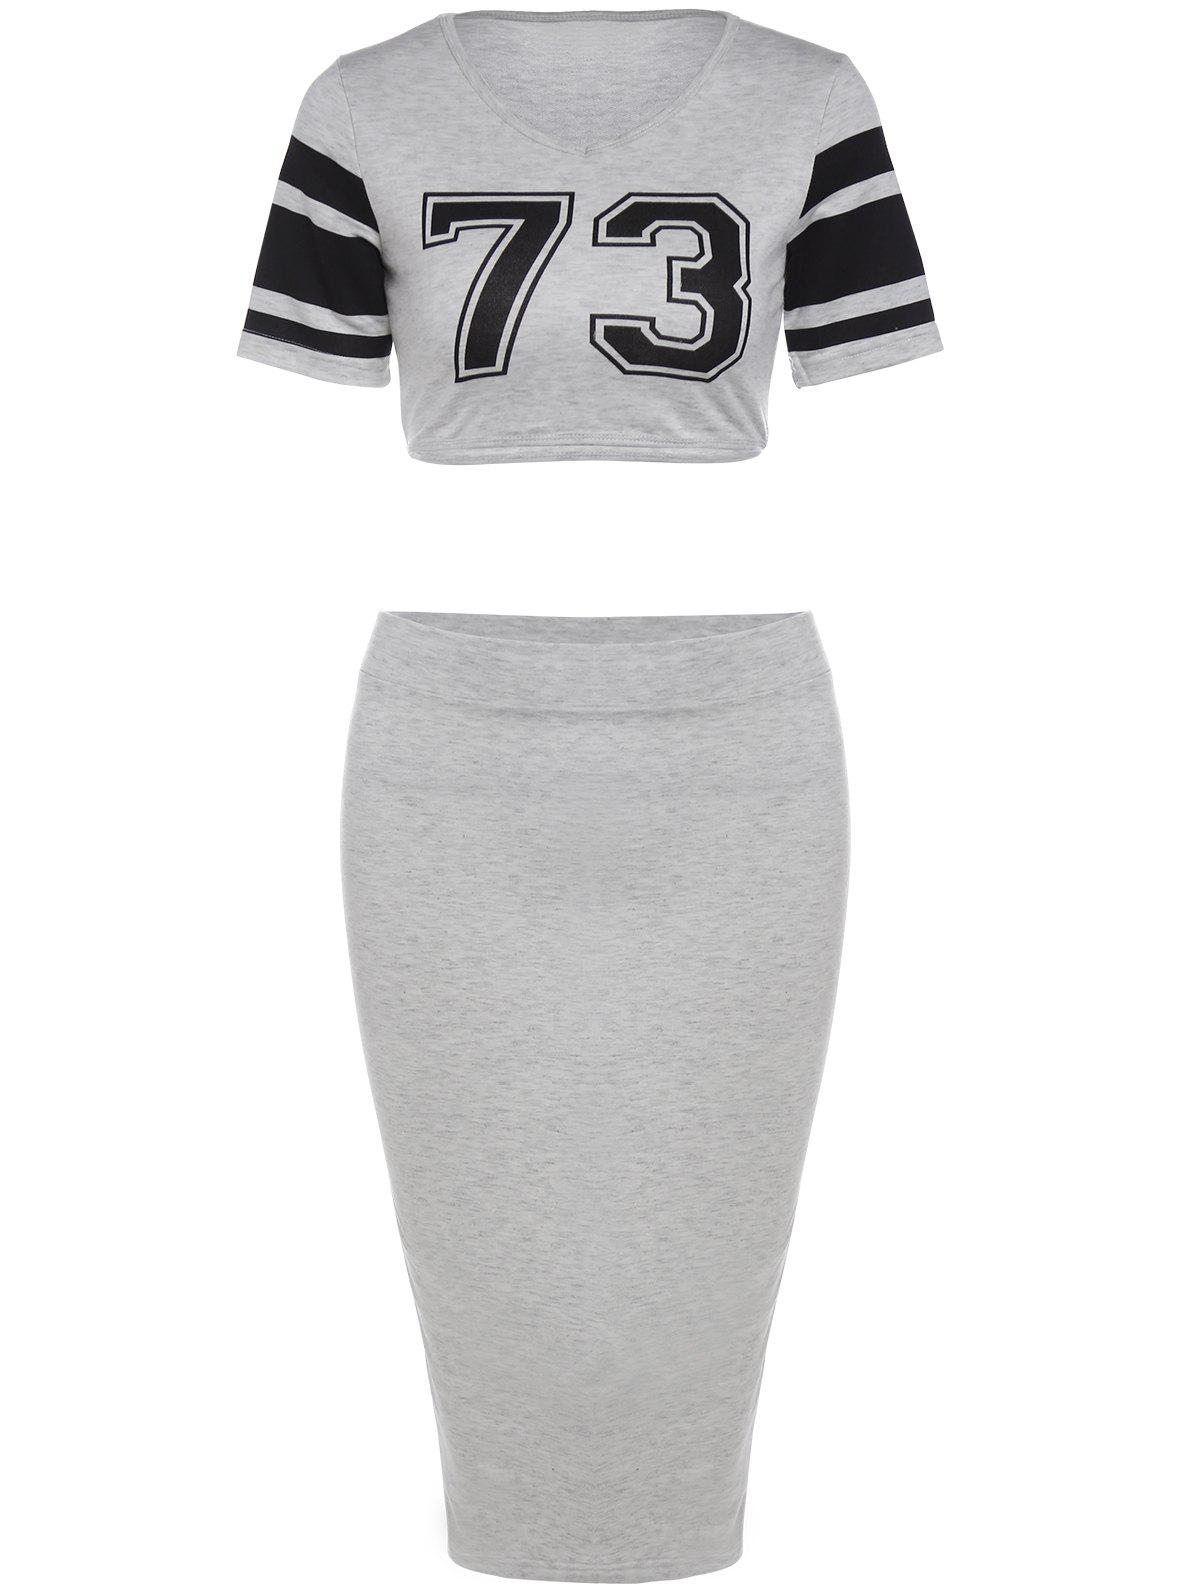 Stylish Round Neck Short Sleeve Crop Top + Bodycon Skirt Women's Twinset